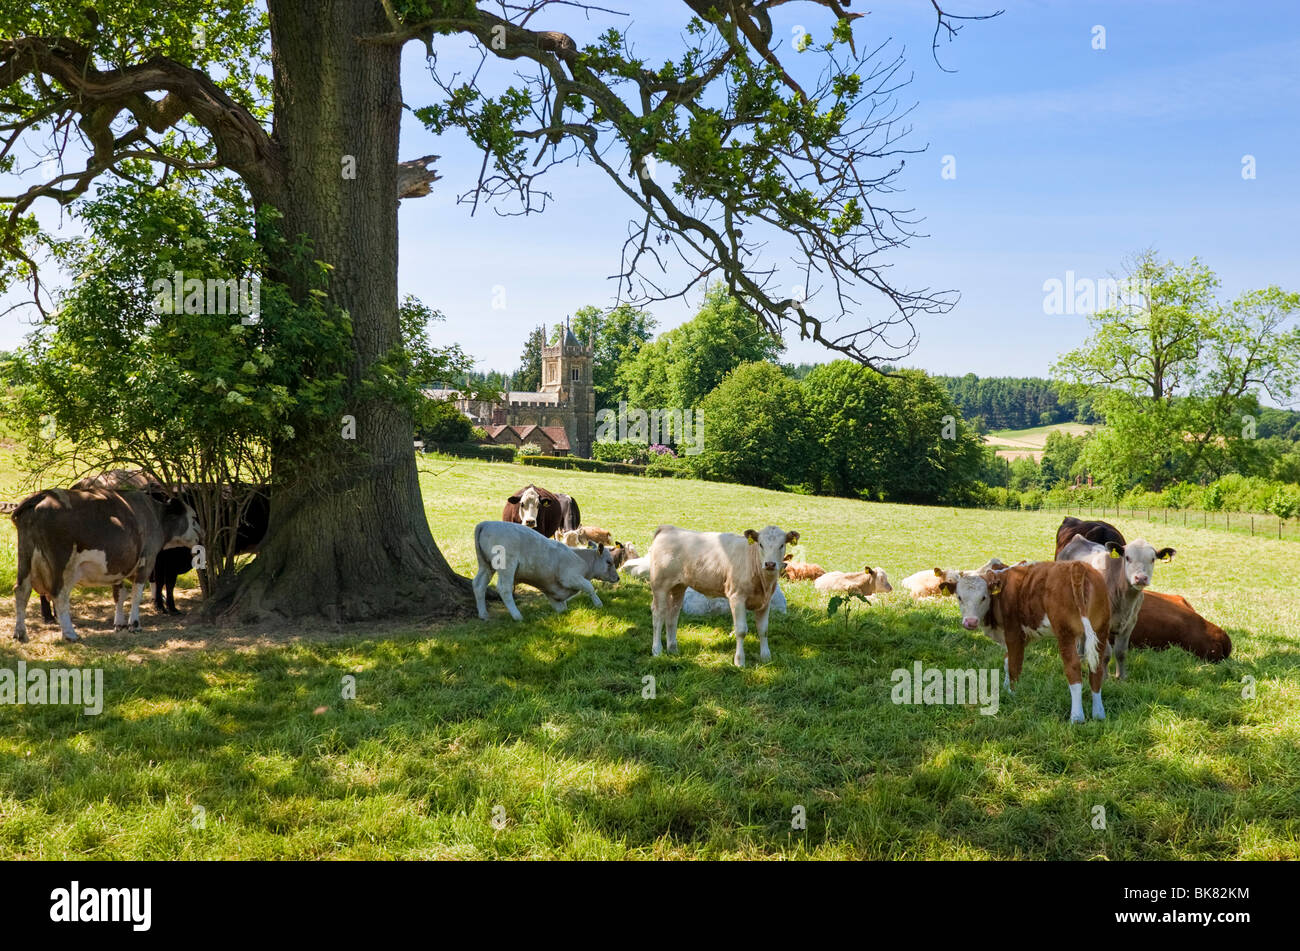 Surrey, England, UK - Dairy cows shading from the summer sun near Albury with church in the background - Stock Image